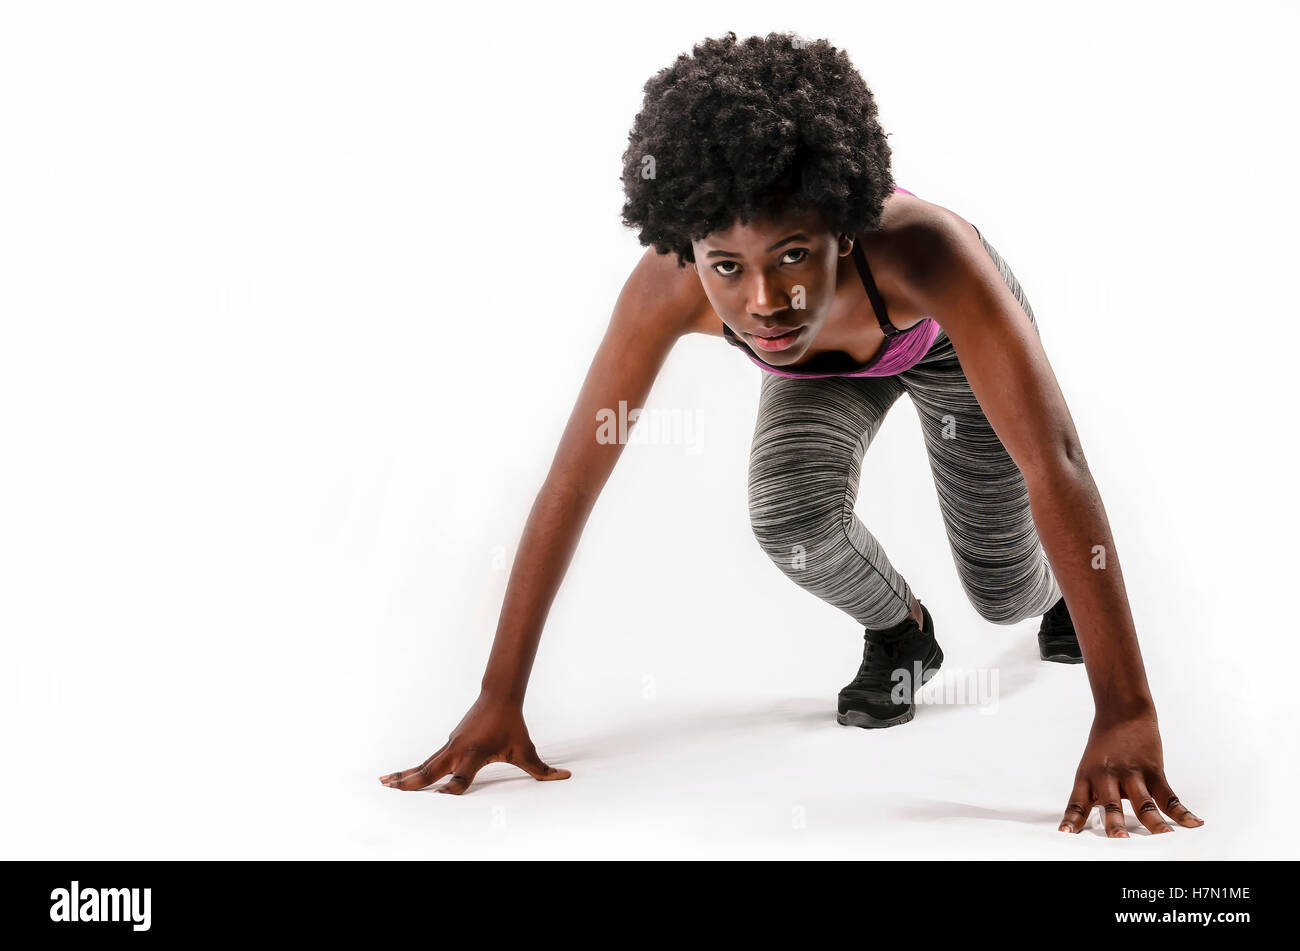 fit black woman set for a run over white background - Stock Image